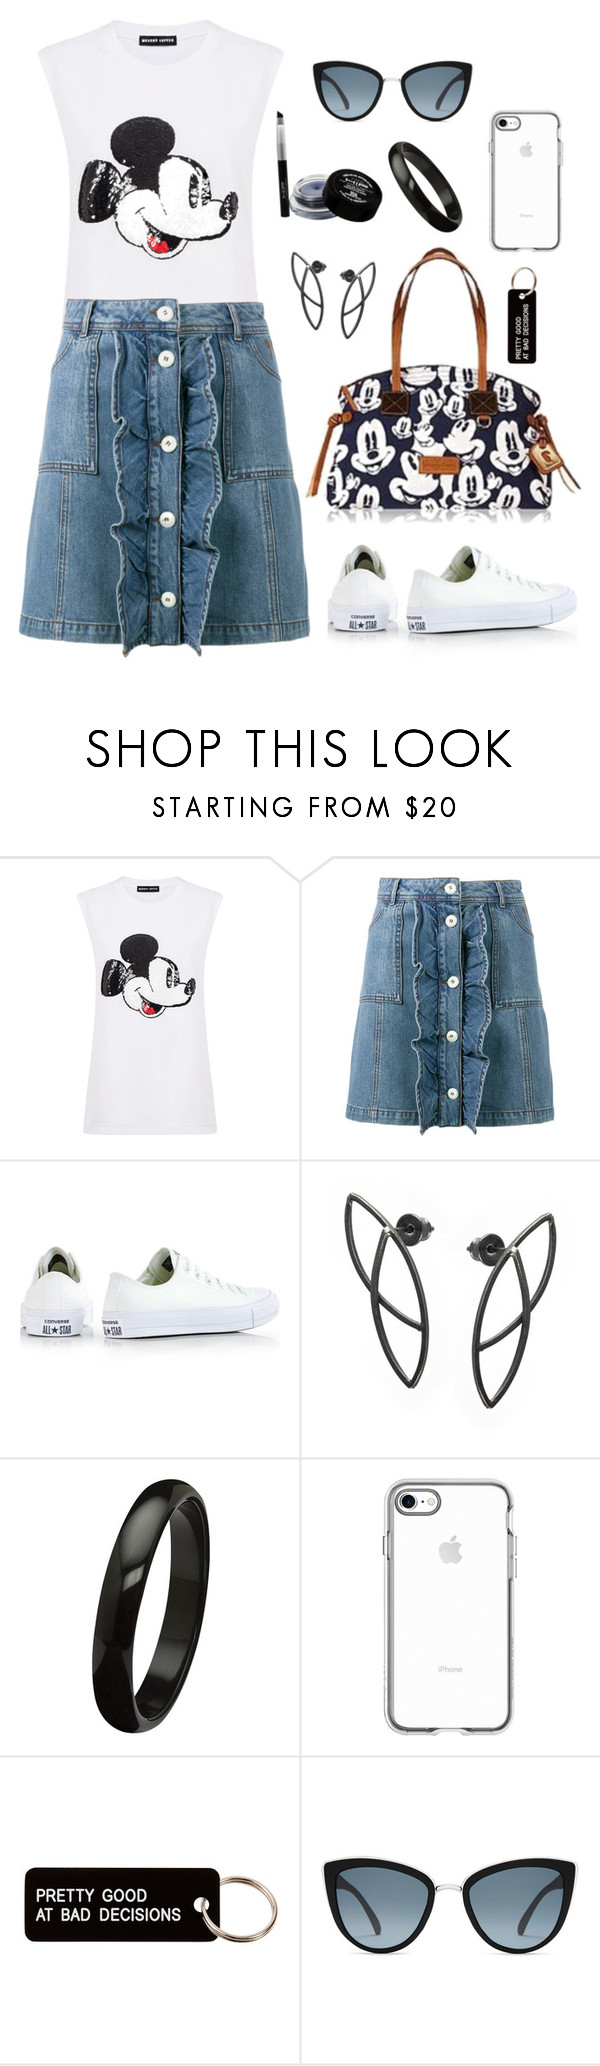 """Untitled #2135"" by ebramos ❤ liked on Polyvore featuring Markus Lupfer, Ganni, Converse, Various Projects and Topshop"